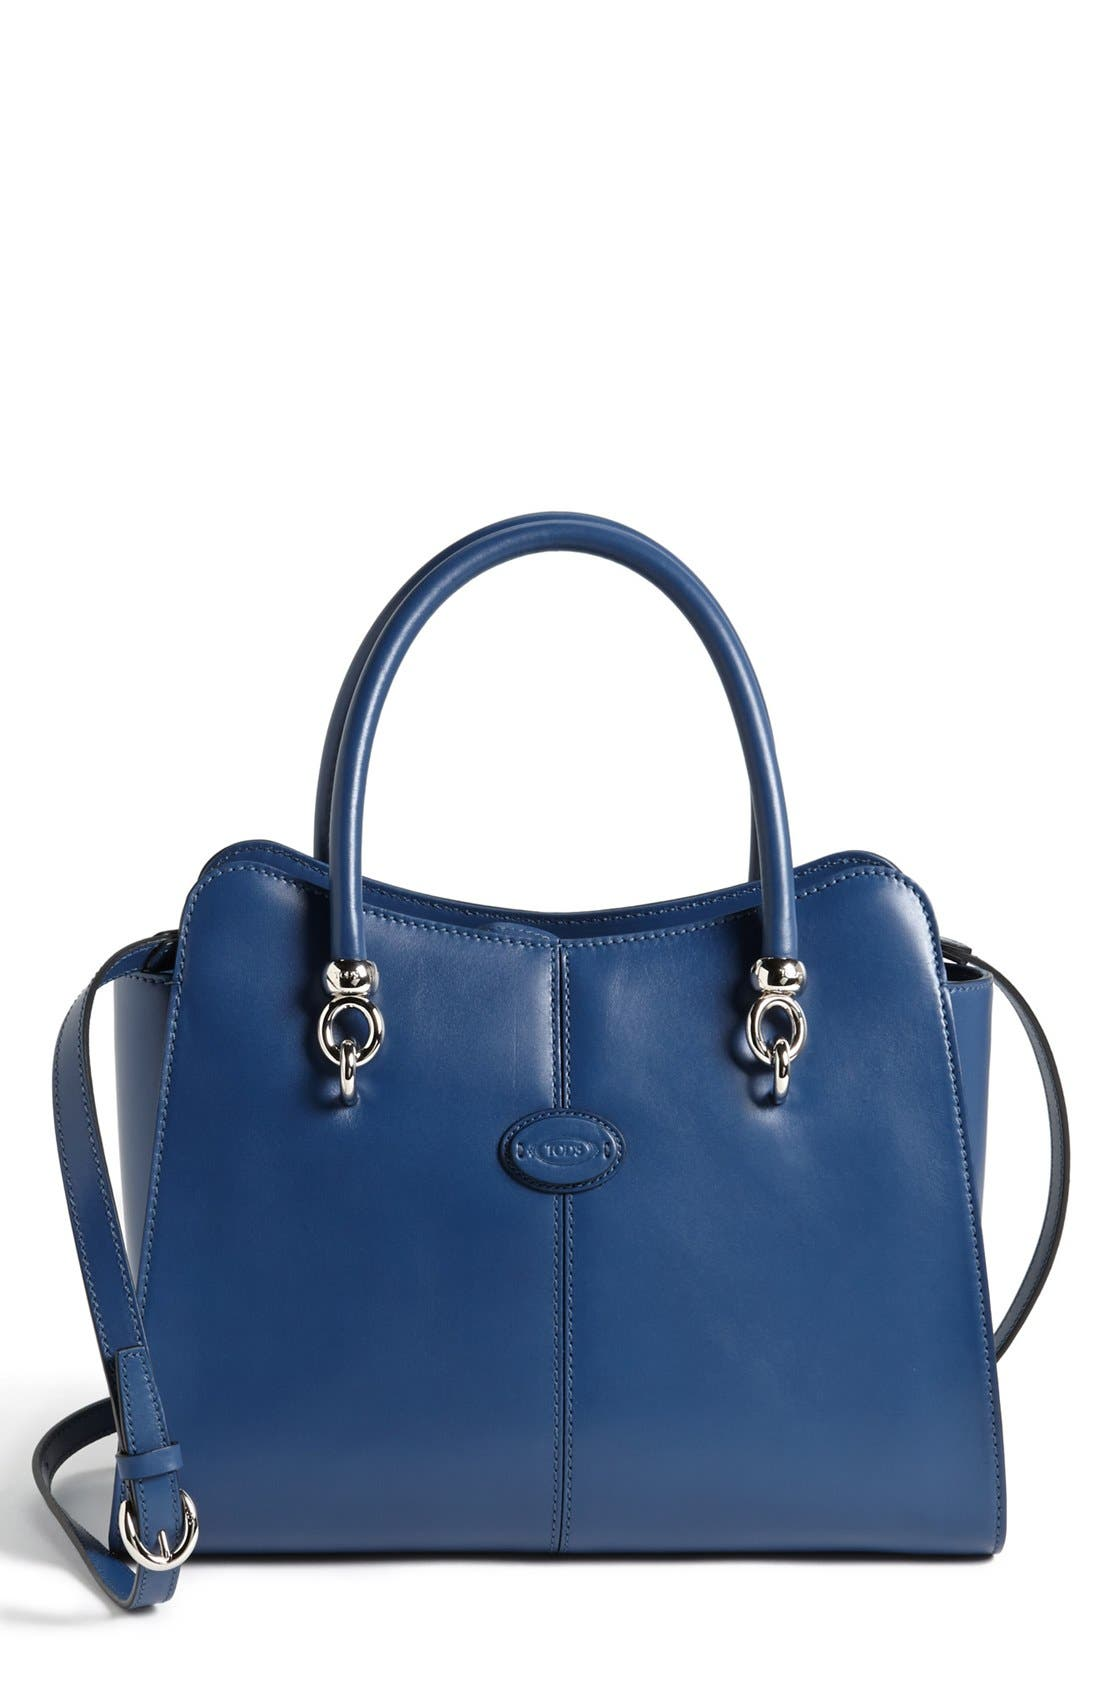 Main Image - Tod's 'Sella' Leather Shopper